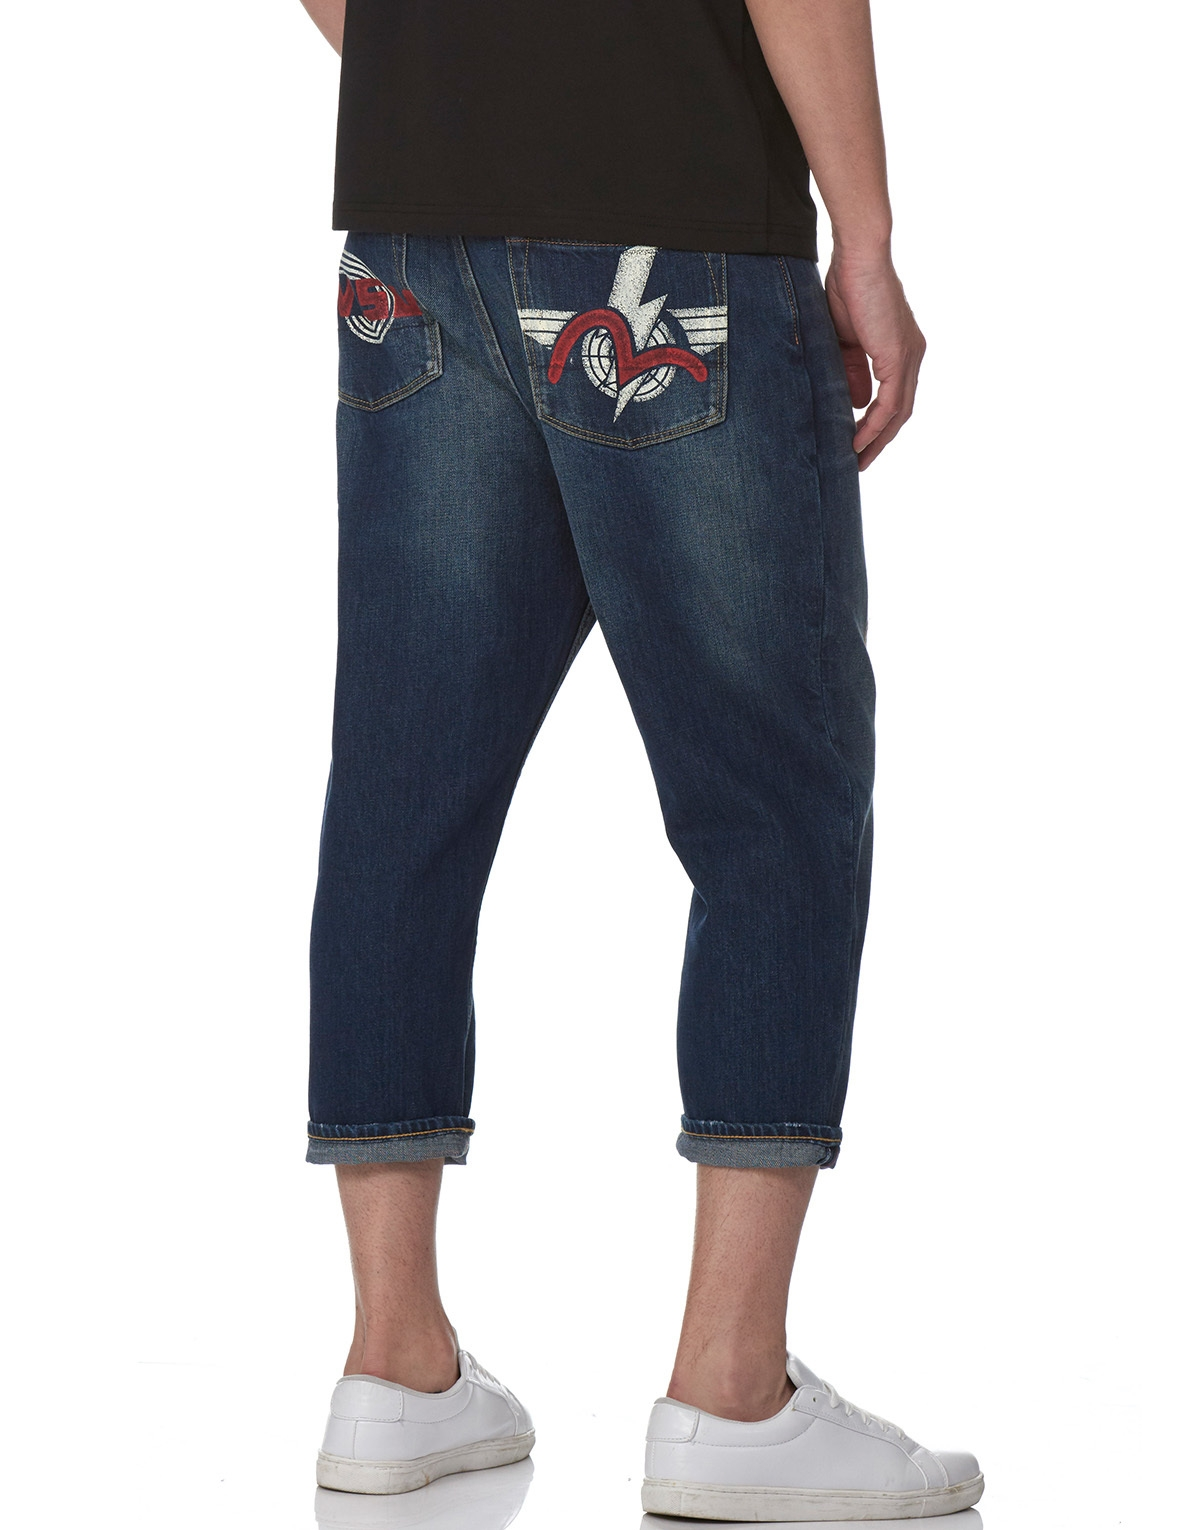 EVISU DENIM JEANS WITH LOGO AND SEAGULL PRINT